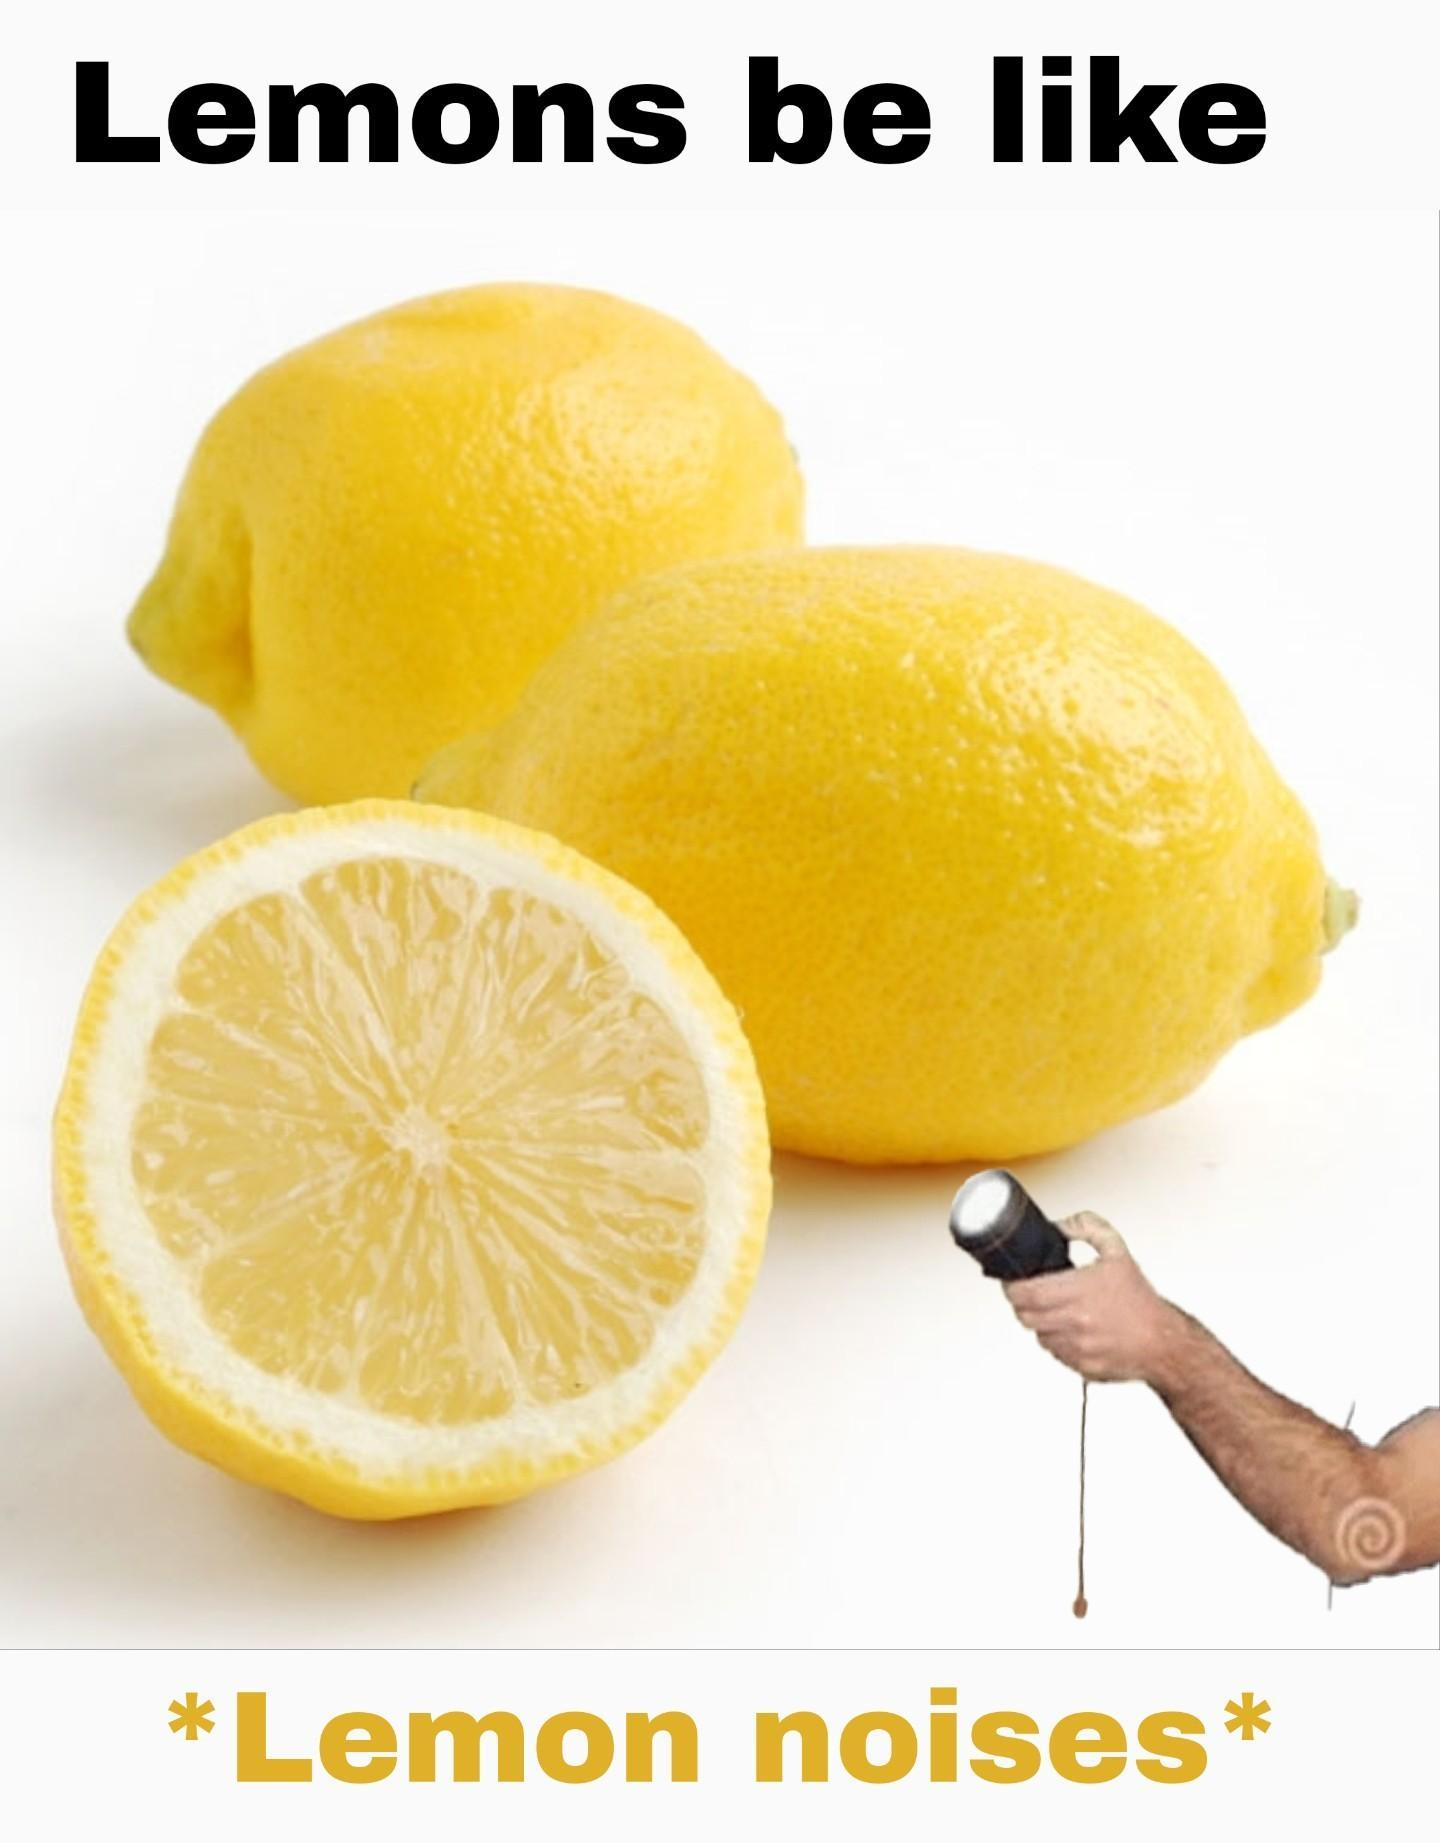 Lemon noises - meme